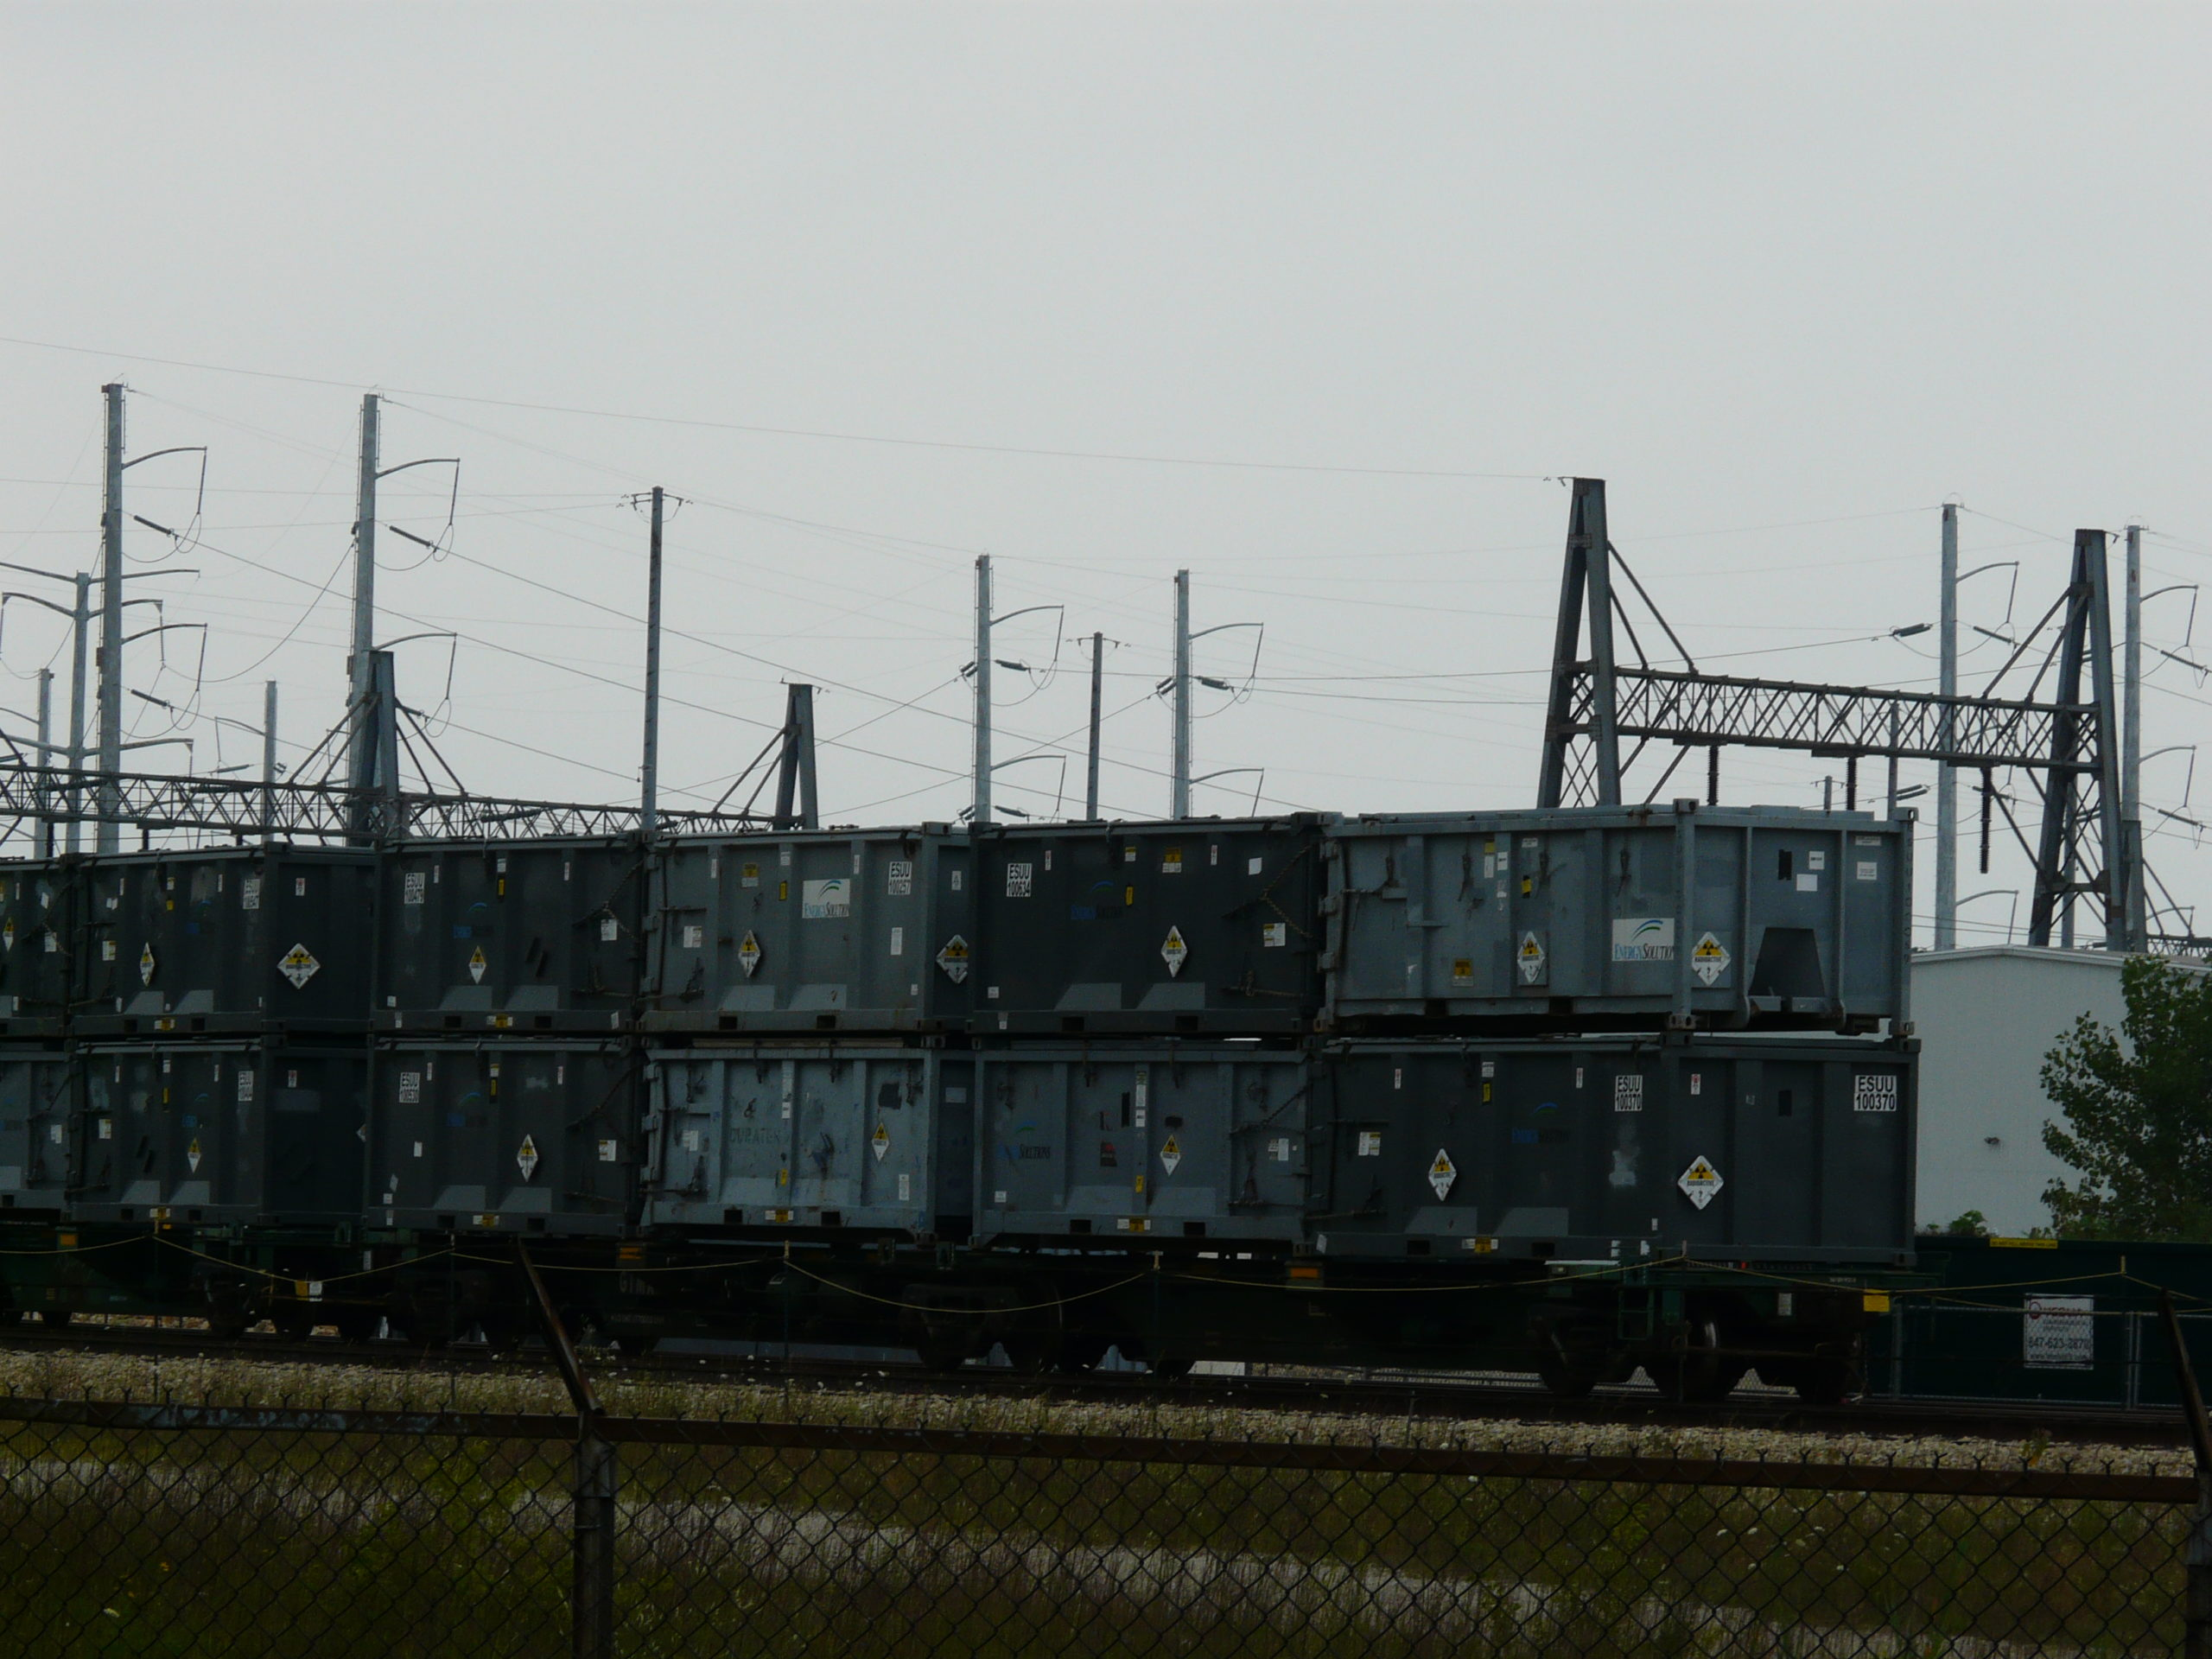 Radioactive Waste Shipment Rail